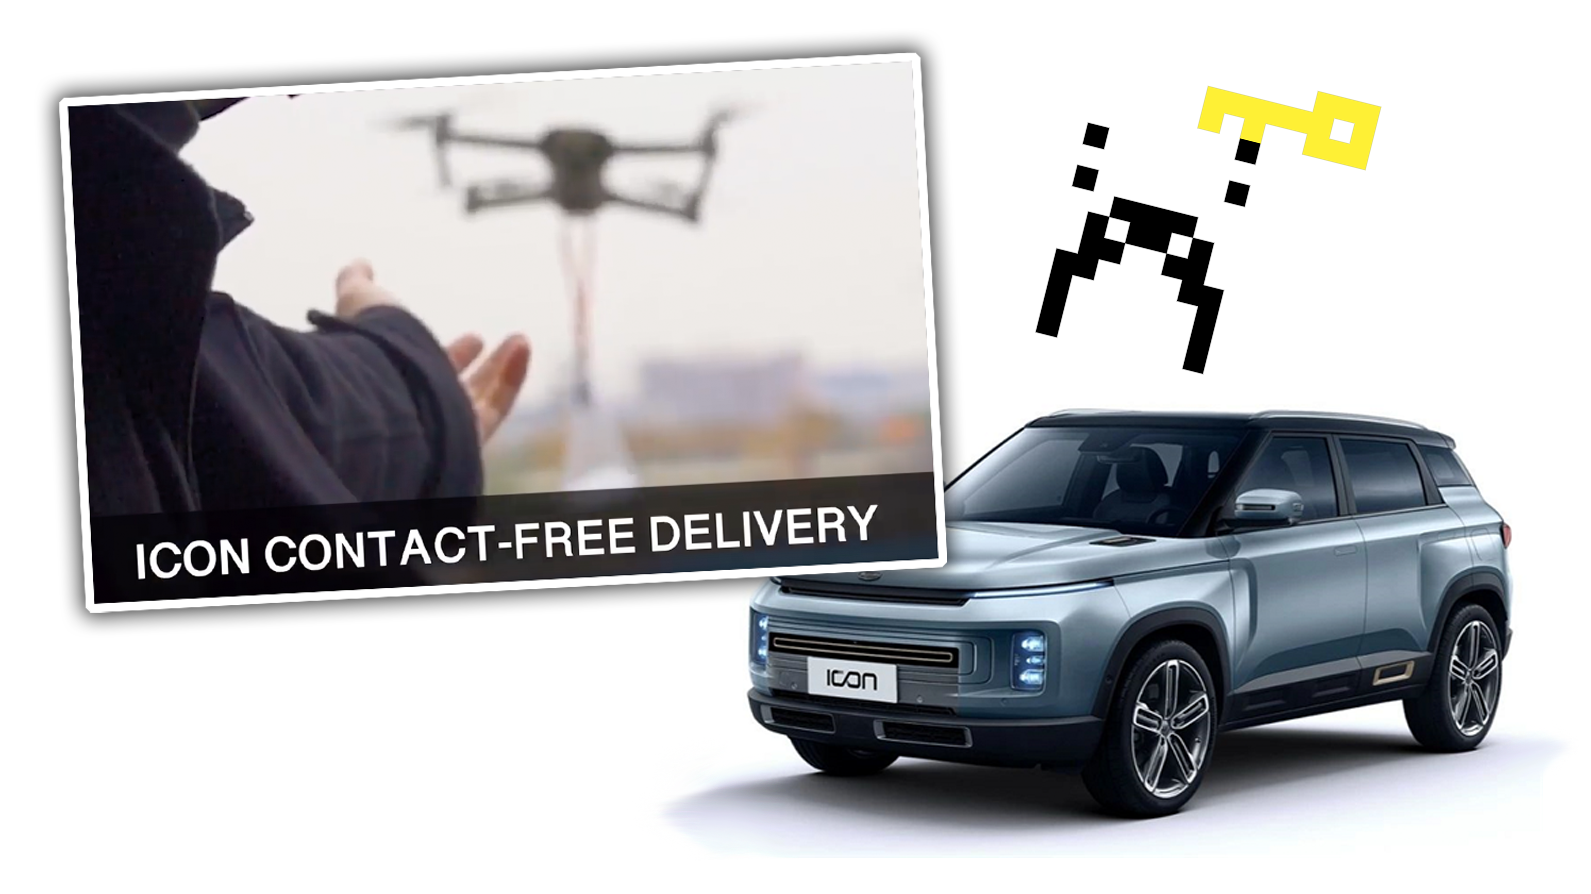 Geely Has Plans To Sell Cars Online And Deliver Keys By Drone So They Don't Have To Touch You Because Gross